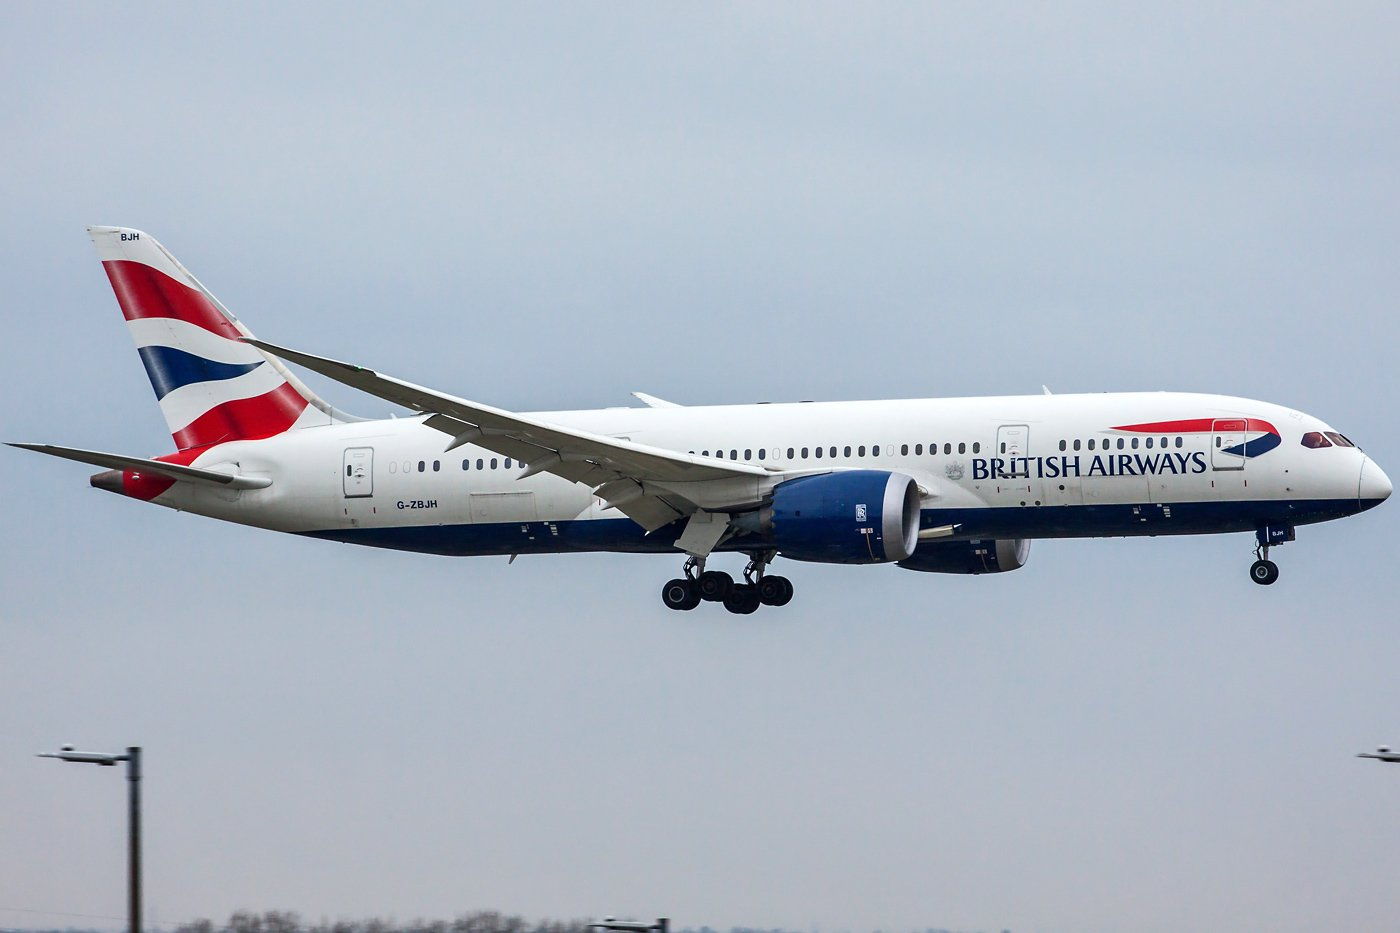 British Airways Boeing 787-8 Dreamliner G-ZBJH